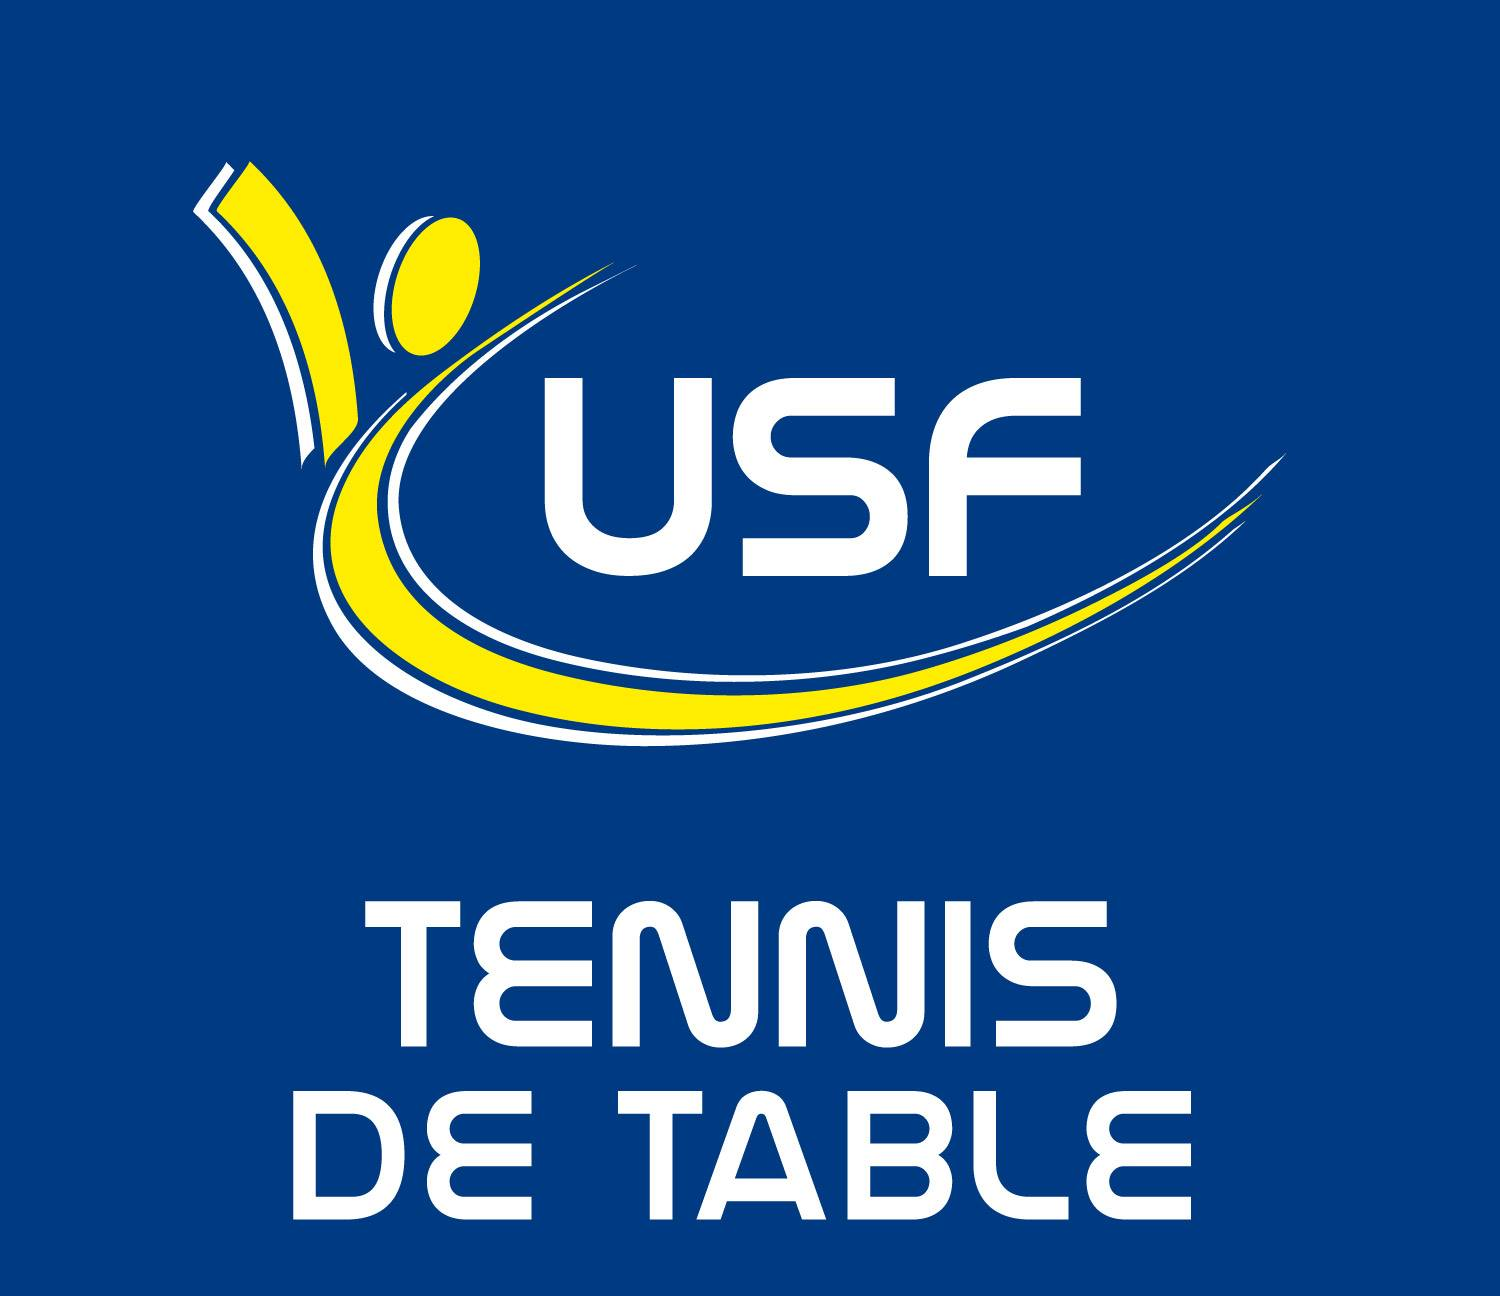 USF Tennis de table.jpg